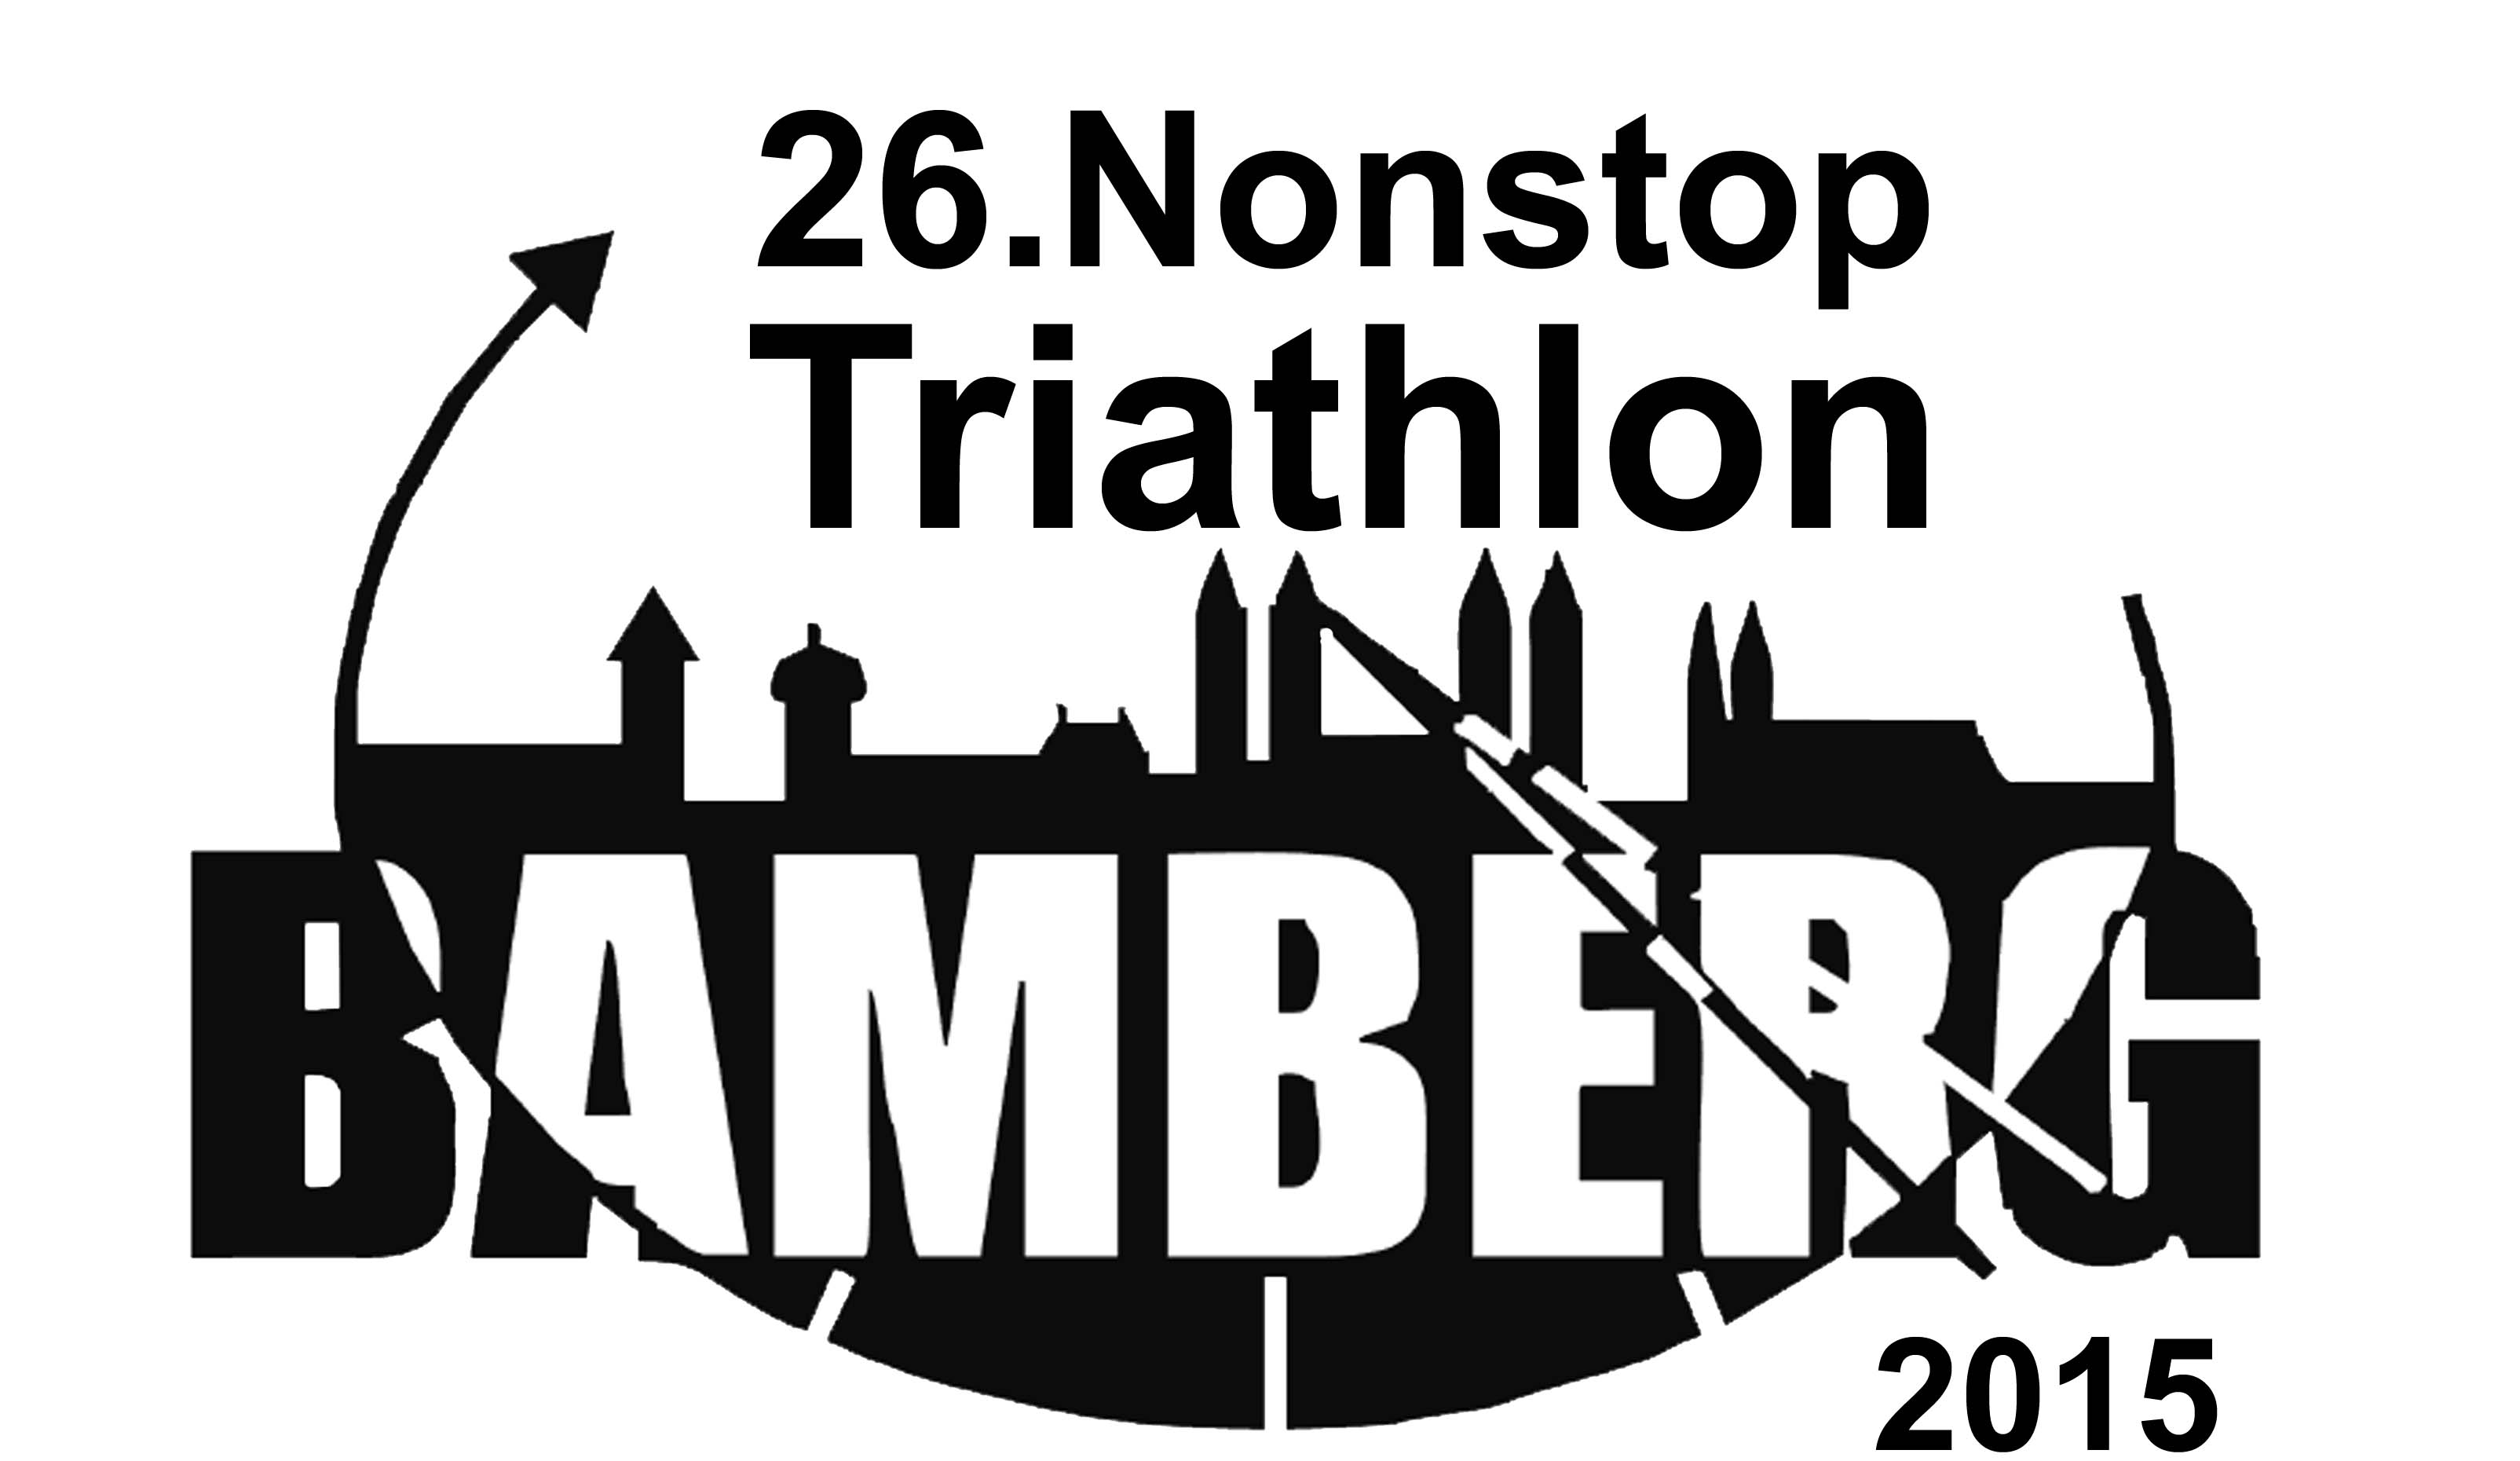 Nonstop Triathlon 2015